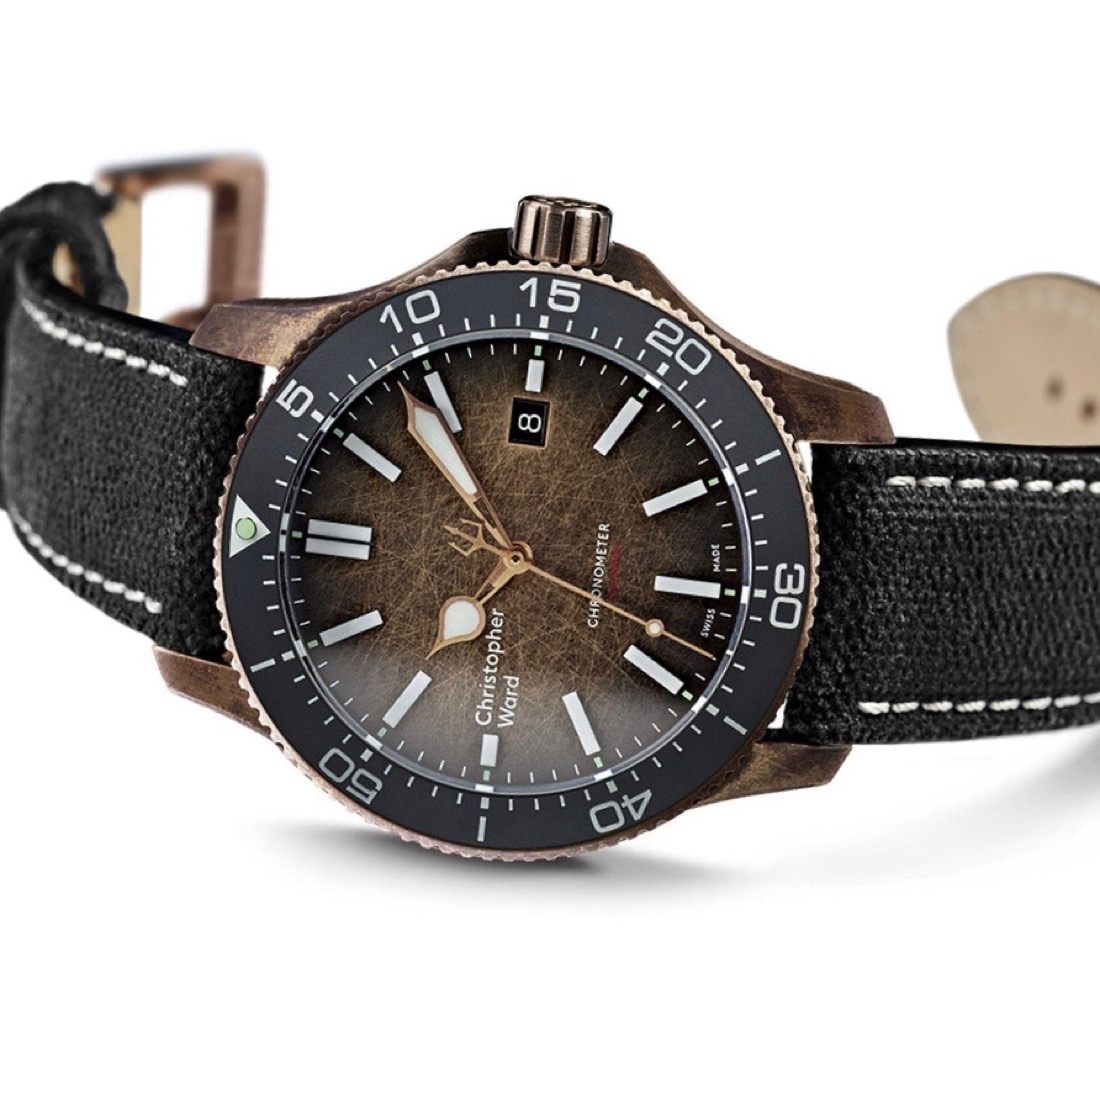 Christopher Ward's new Trident Bronze Ombre Christopher-Ward-C60-Bronze-Ombre-12